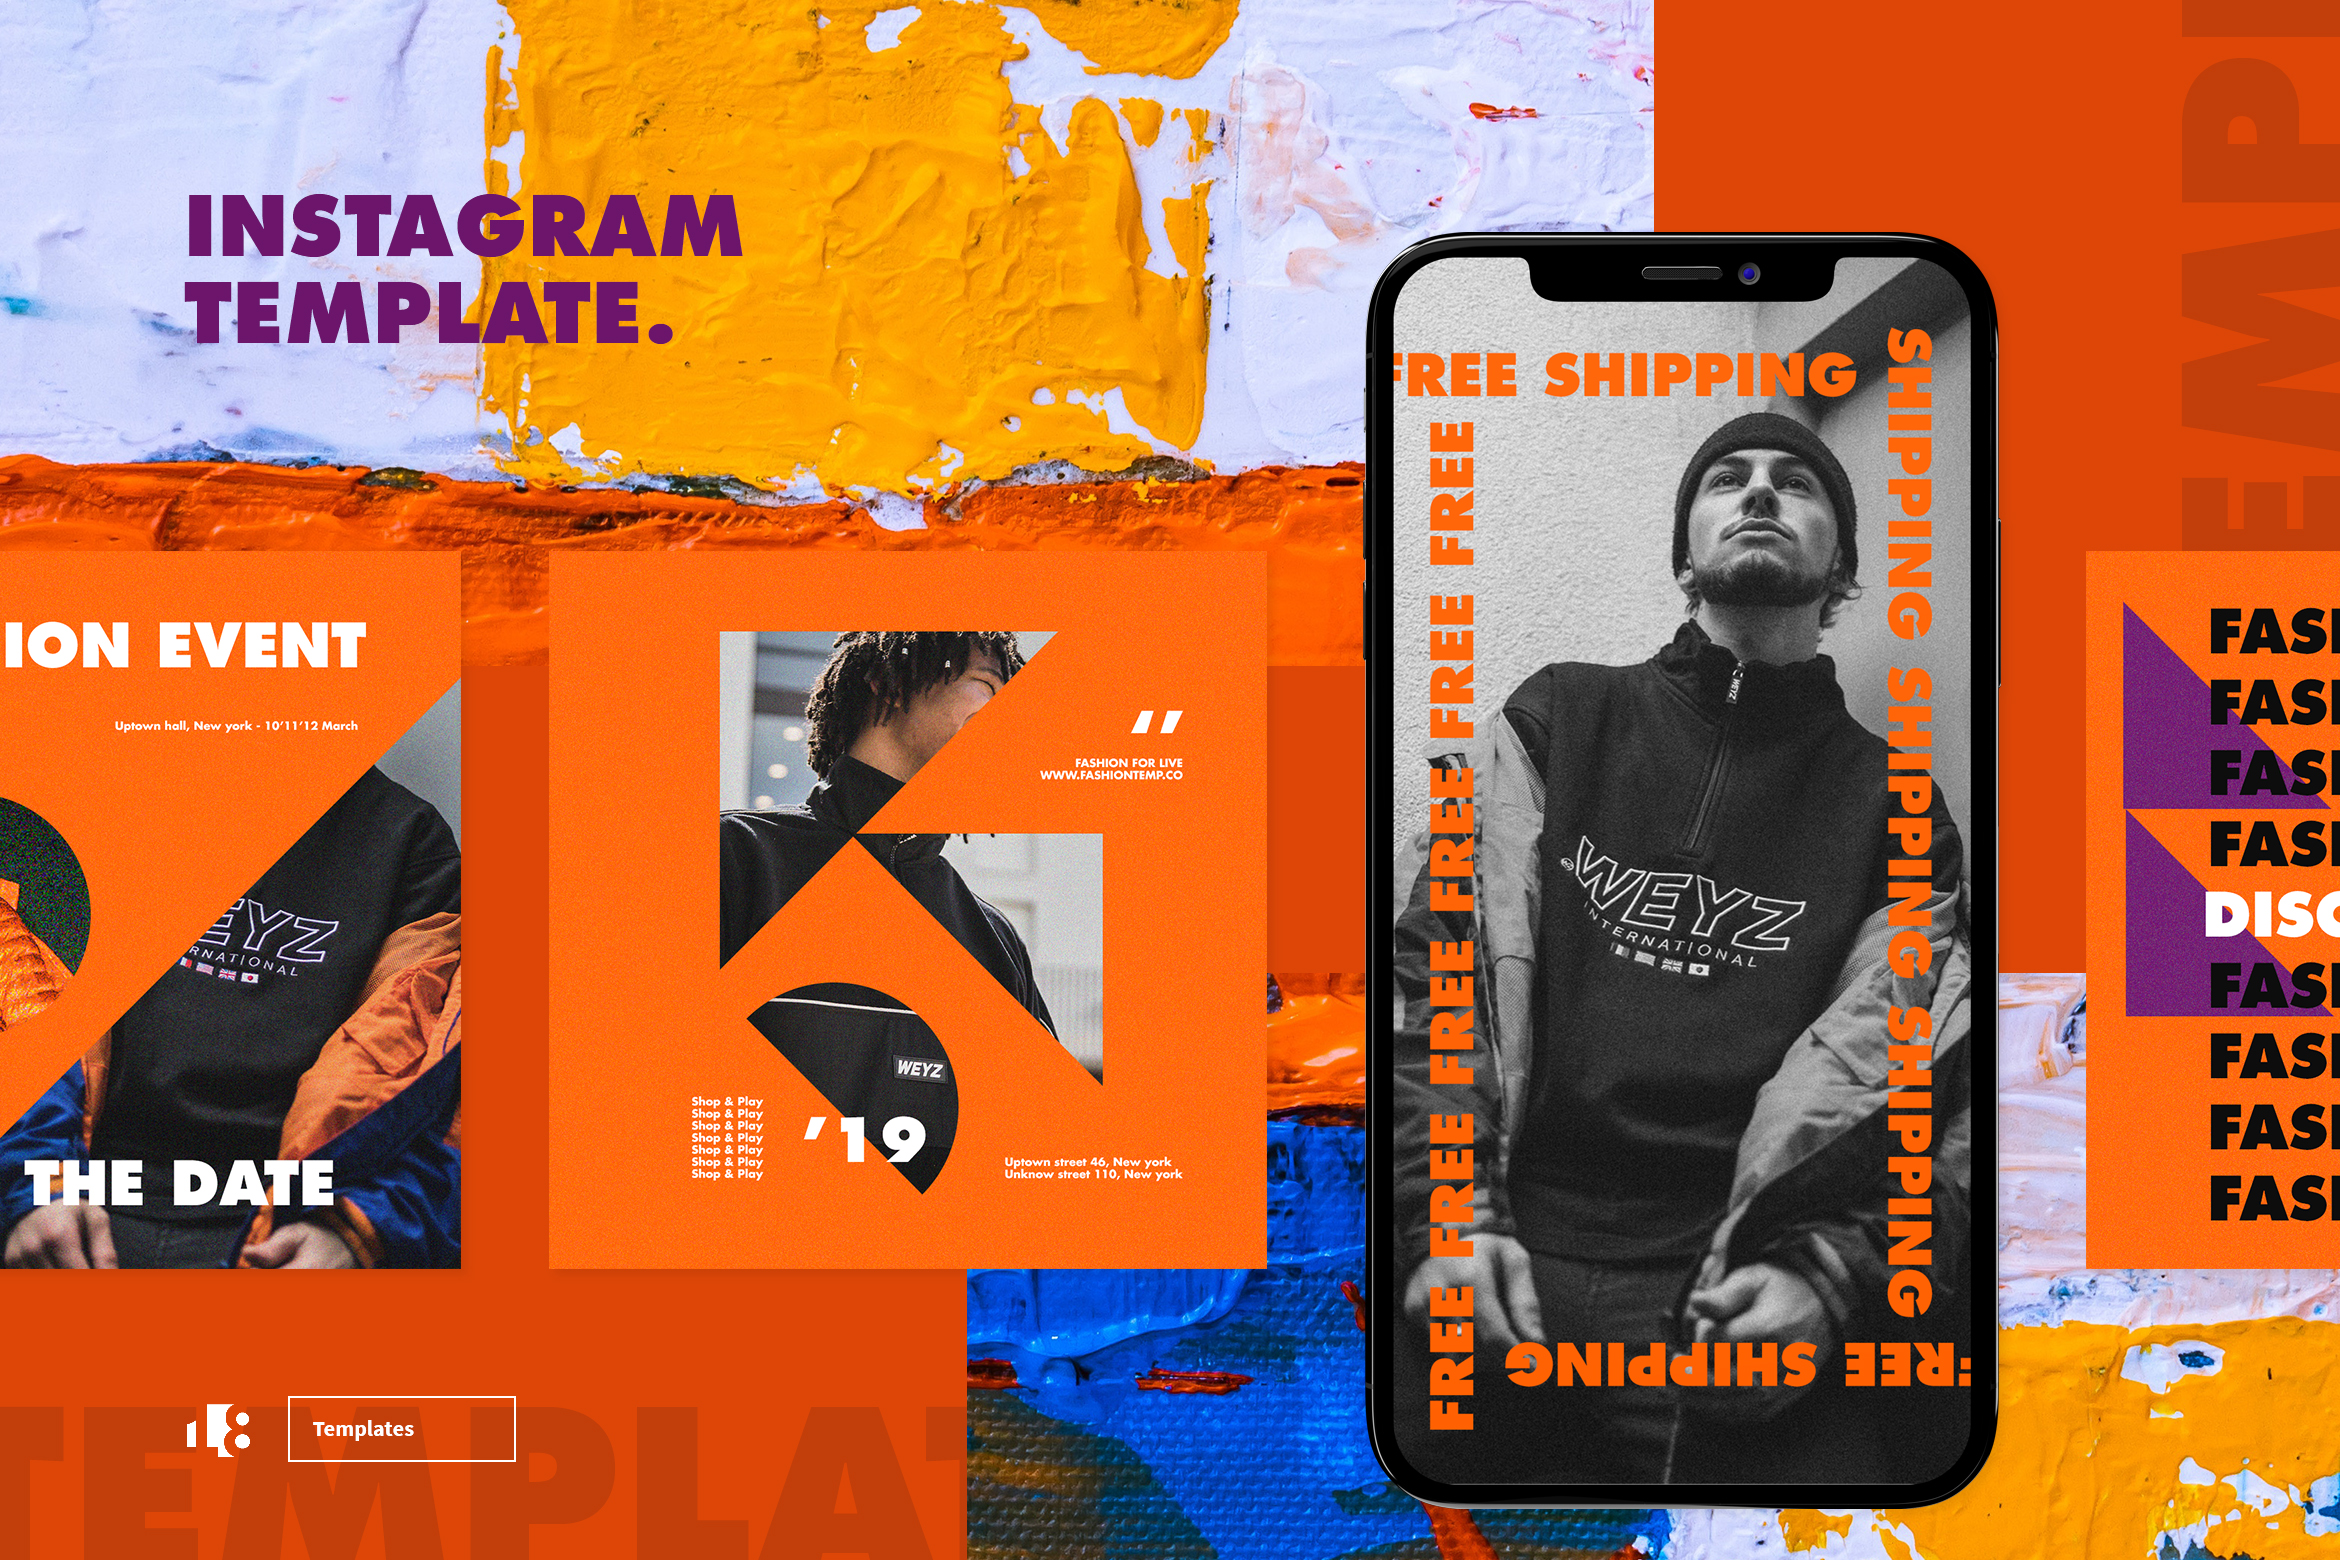 Download Free Instagram Template Graphic By Ovoz Graphics Creative Fabrica for Cricut Explore, Silhouette and other cutting machines.